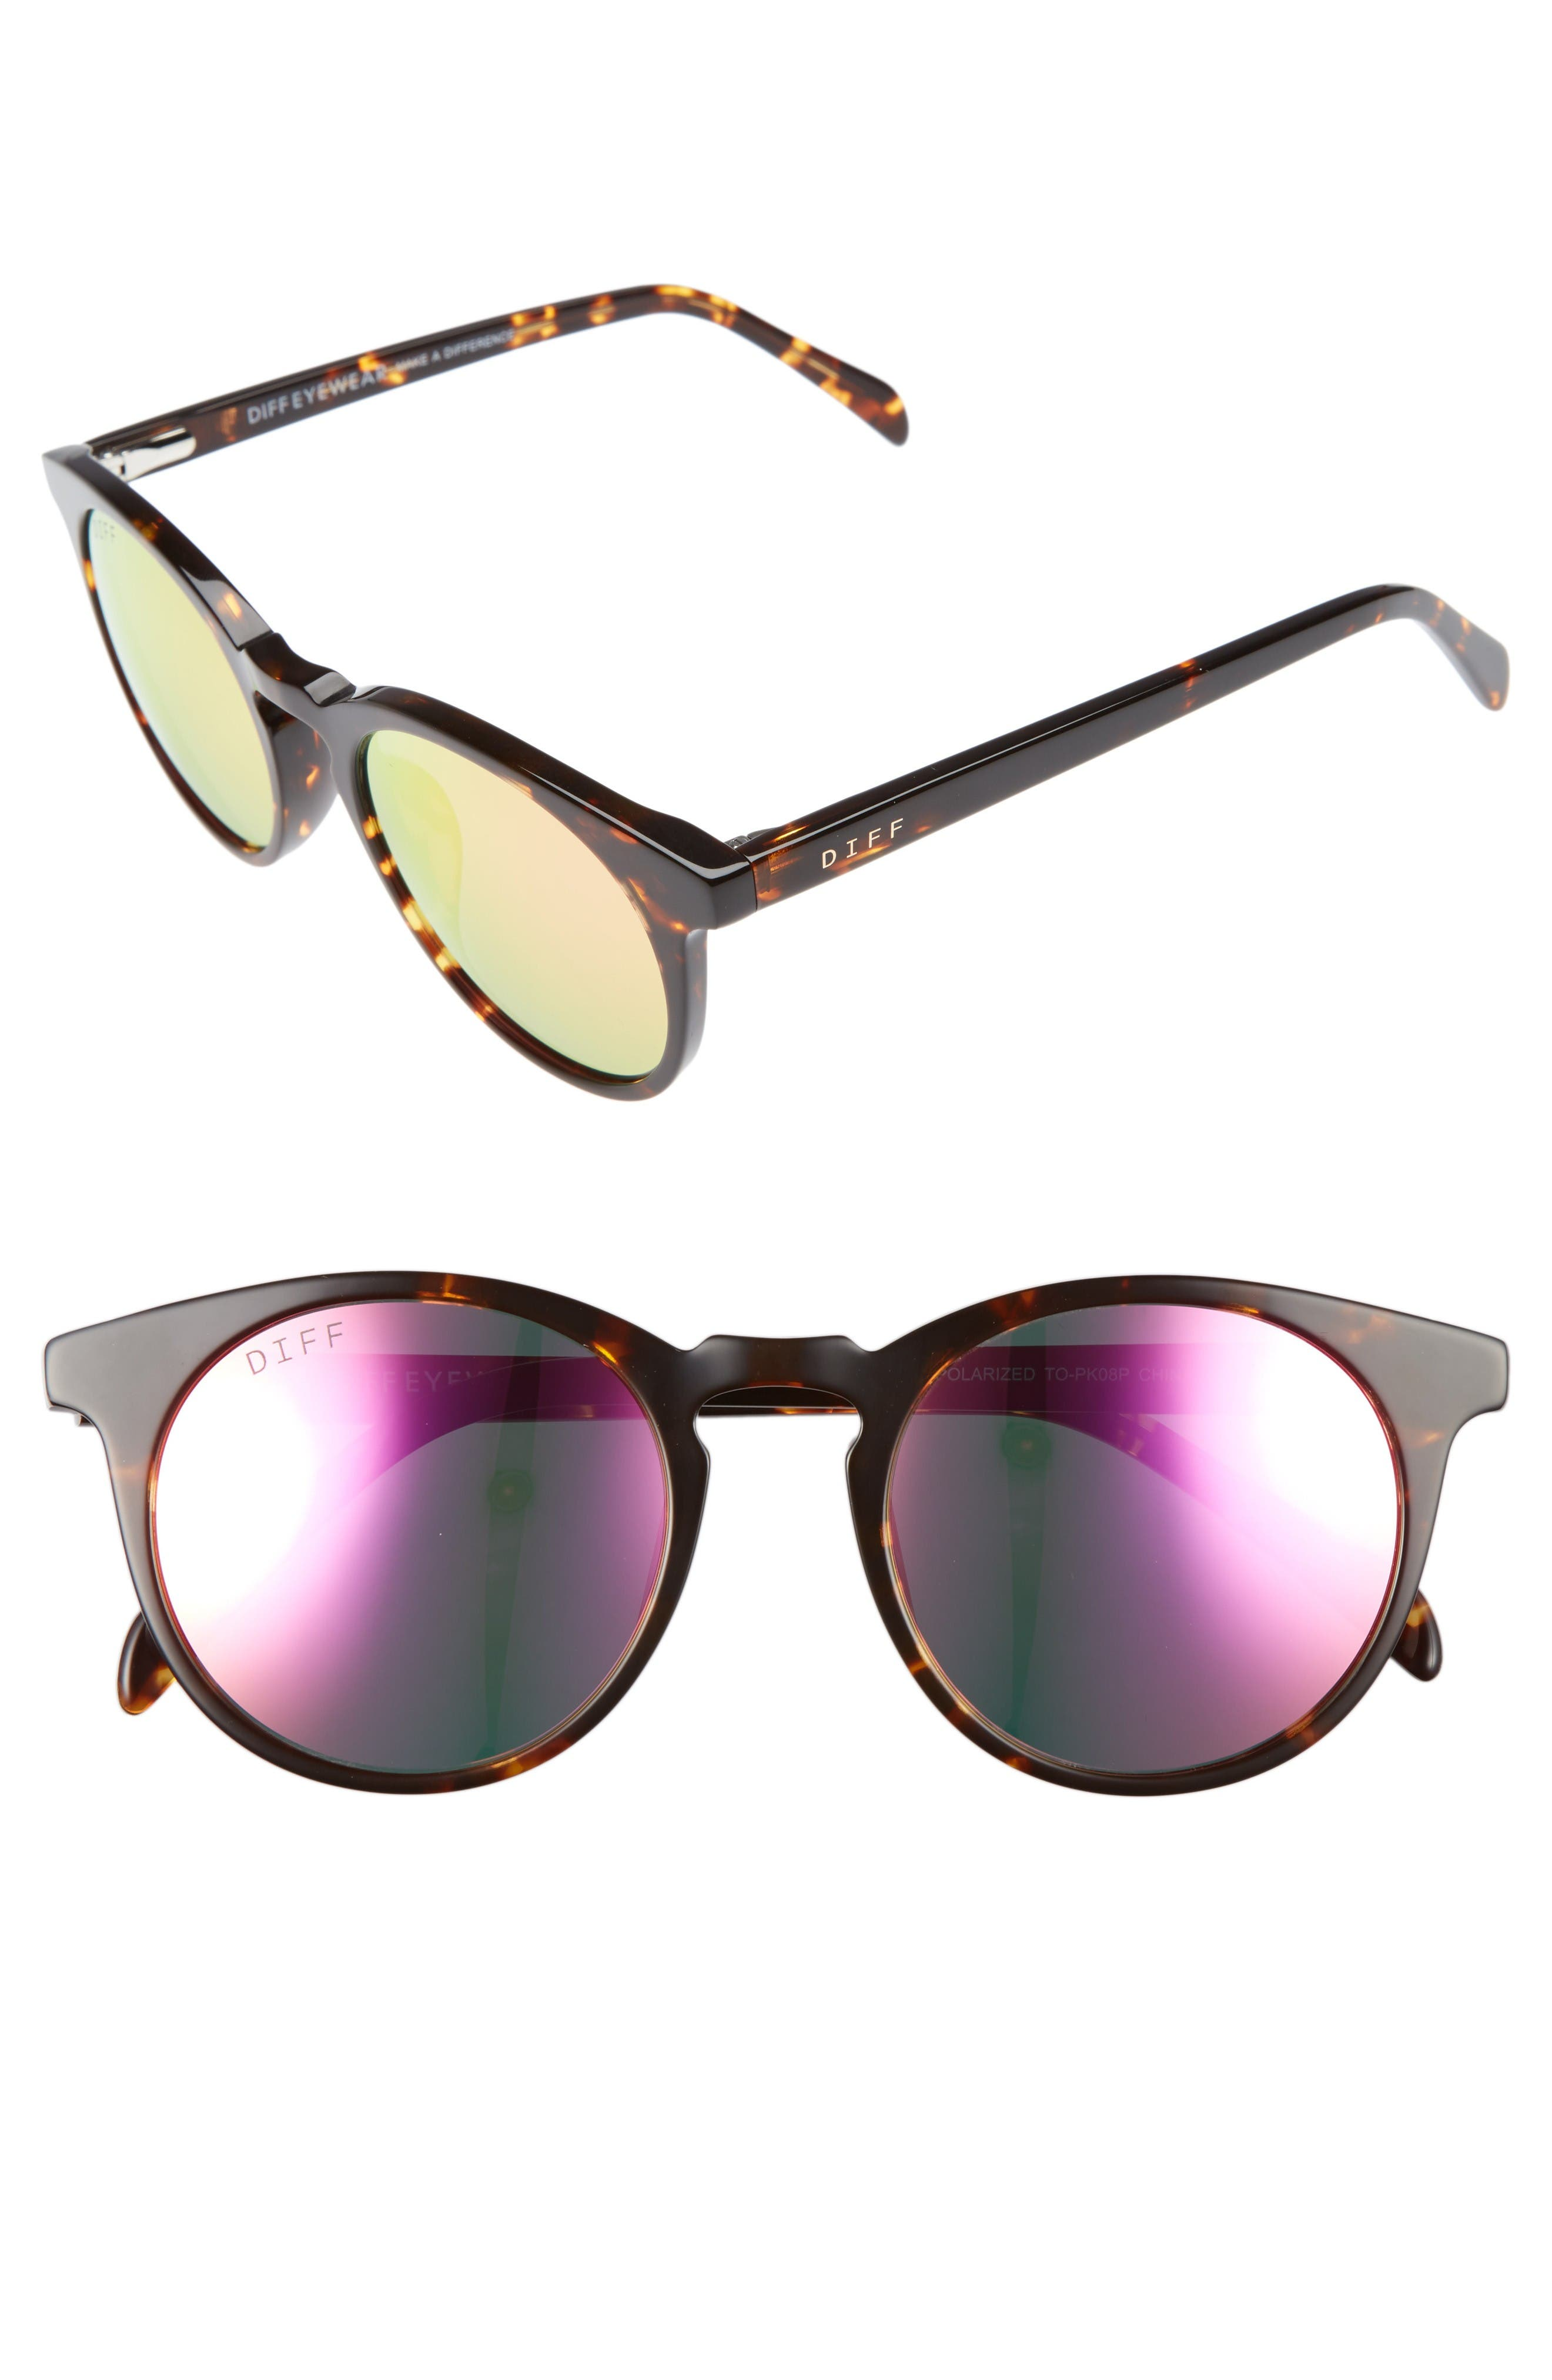 Charlie 48mm Mirrored Polarized Round Retro Sunglasses,                         Main,                         color, Tortoise/ Pink